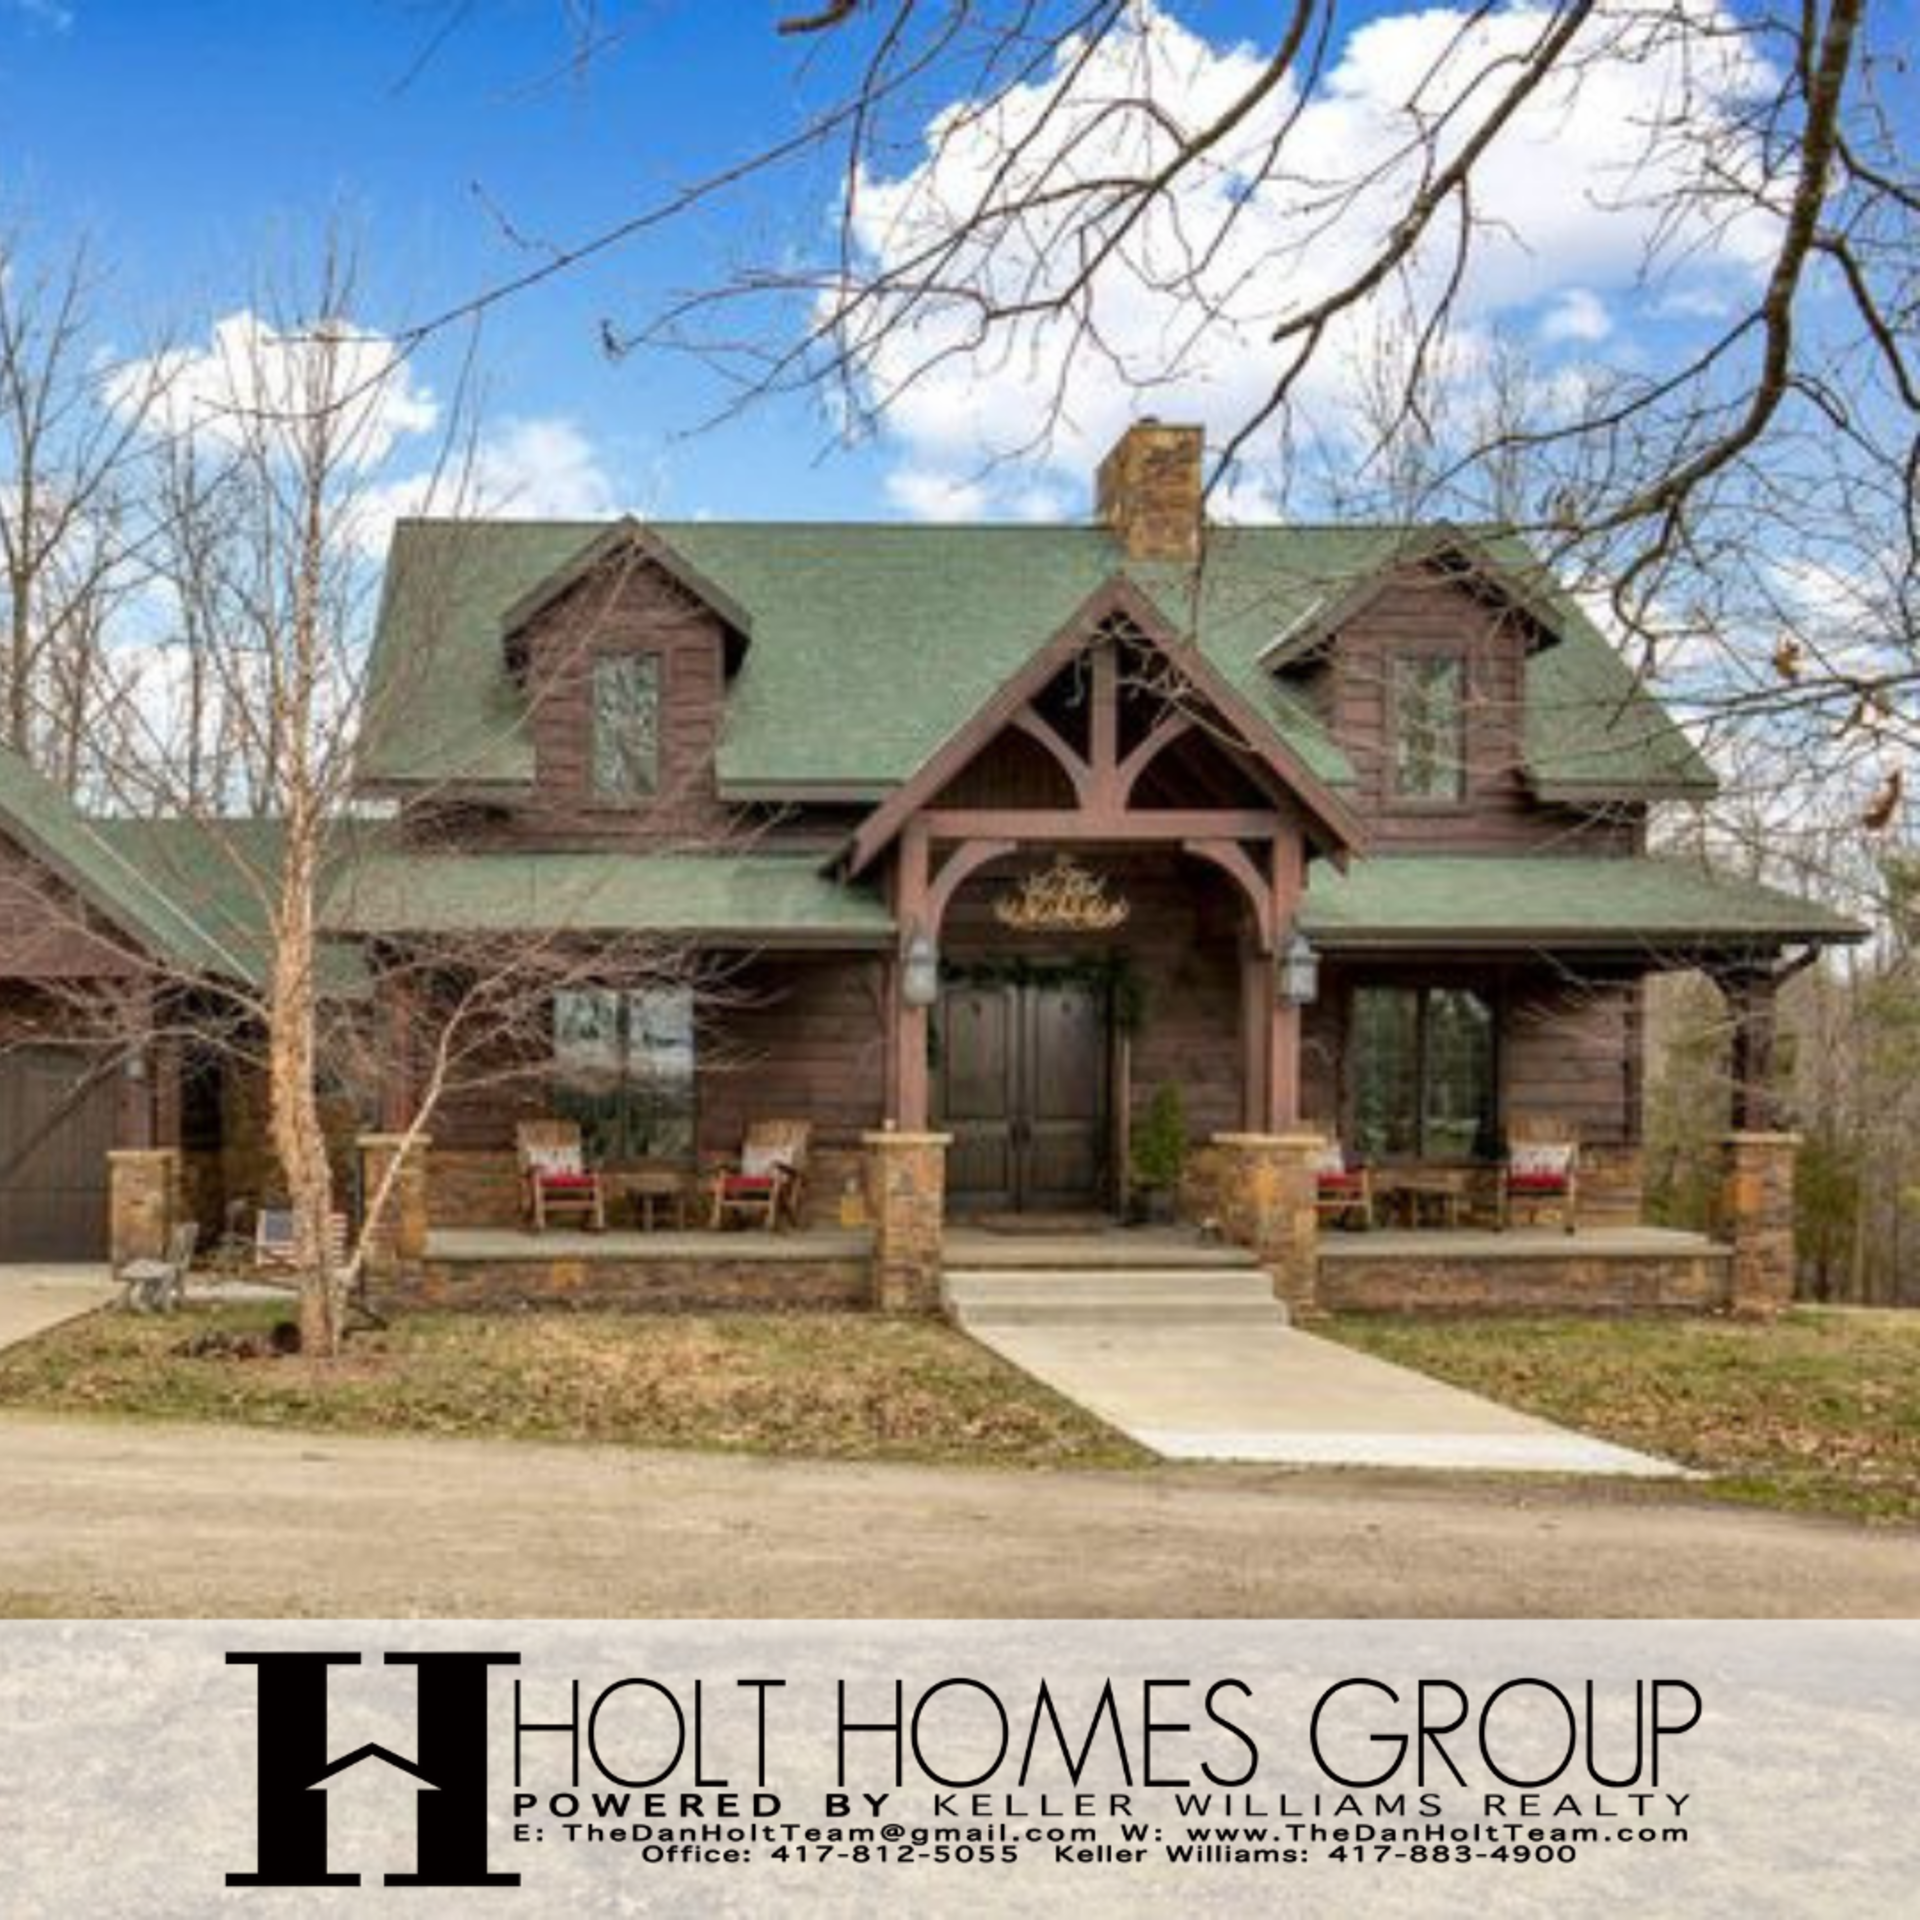 Lodge Style Home That Might be Right for You